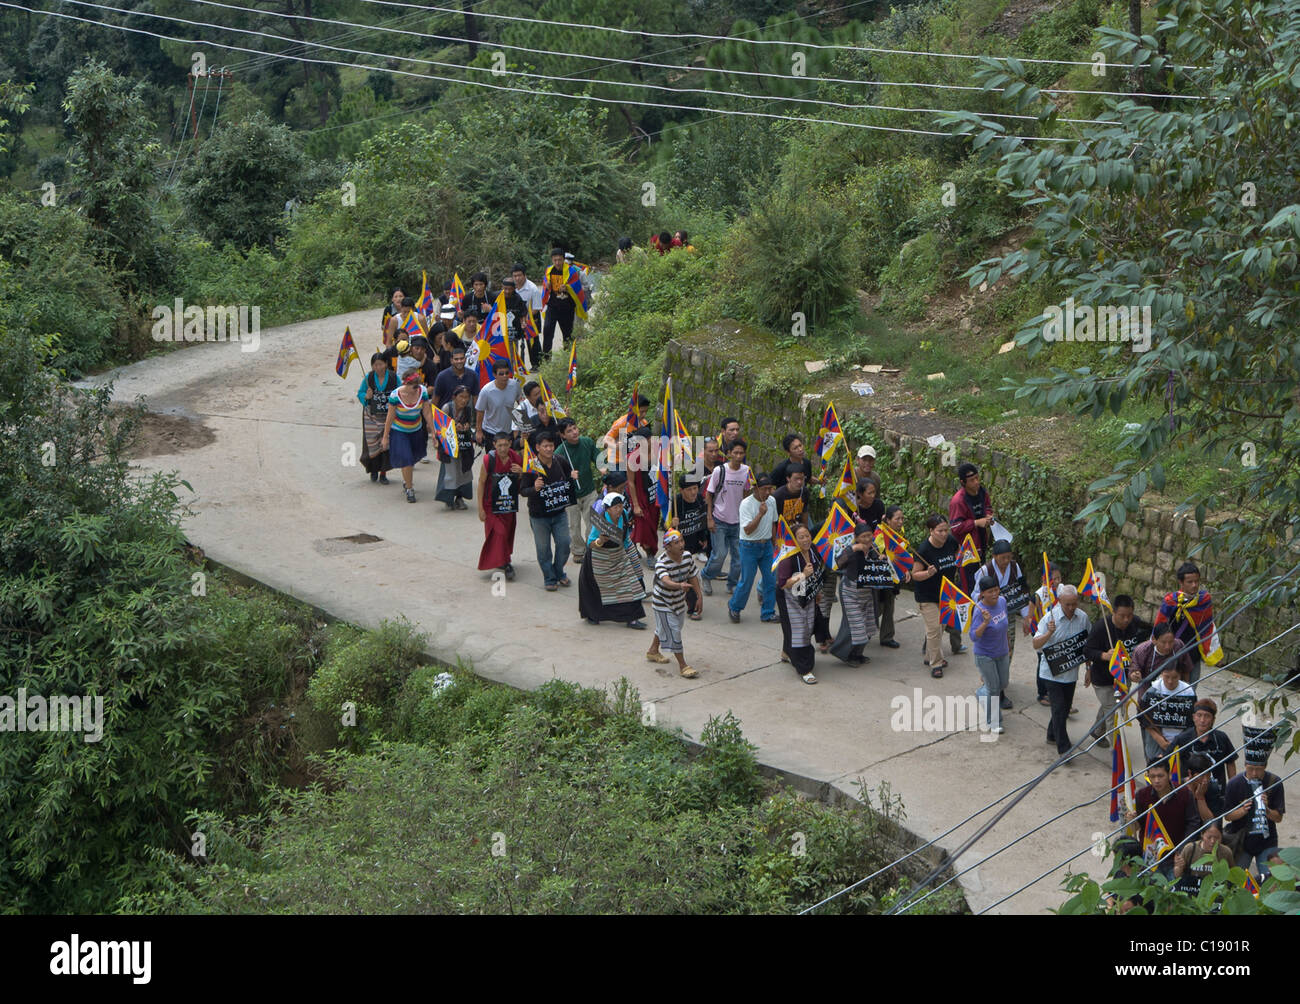 Tibetan men and women march in protest in India - Stock Image